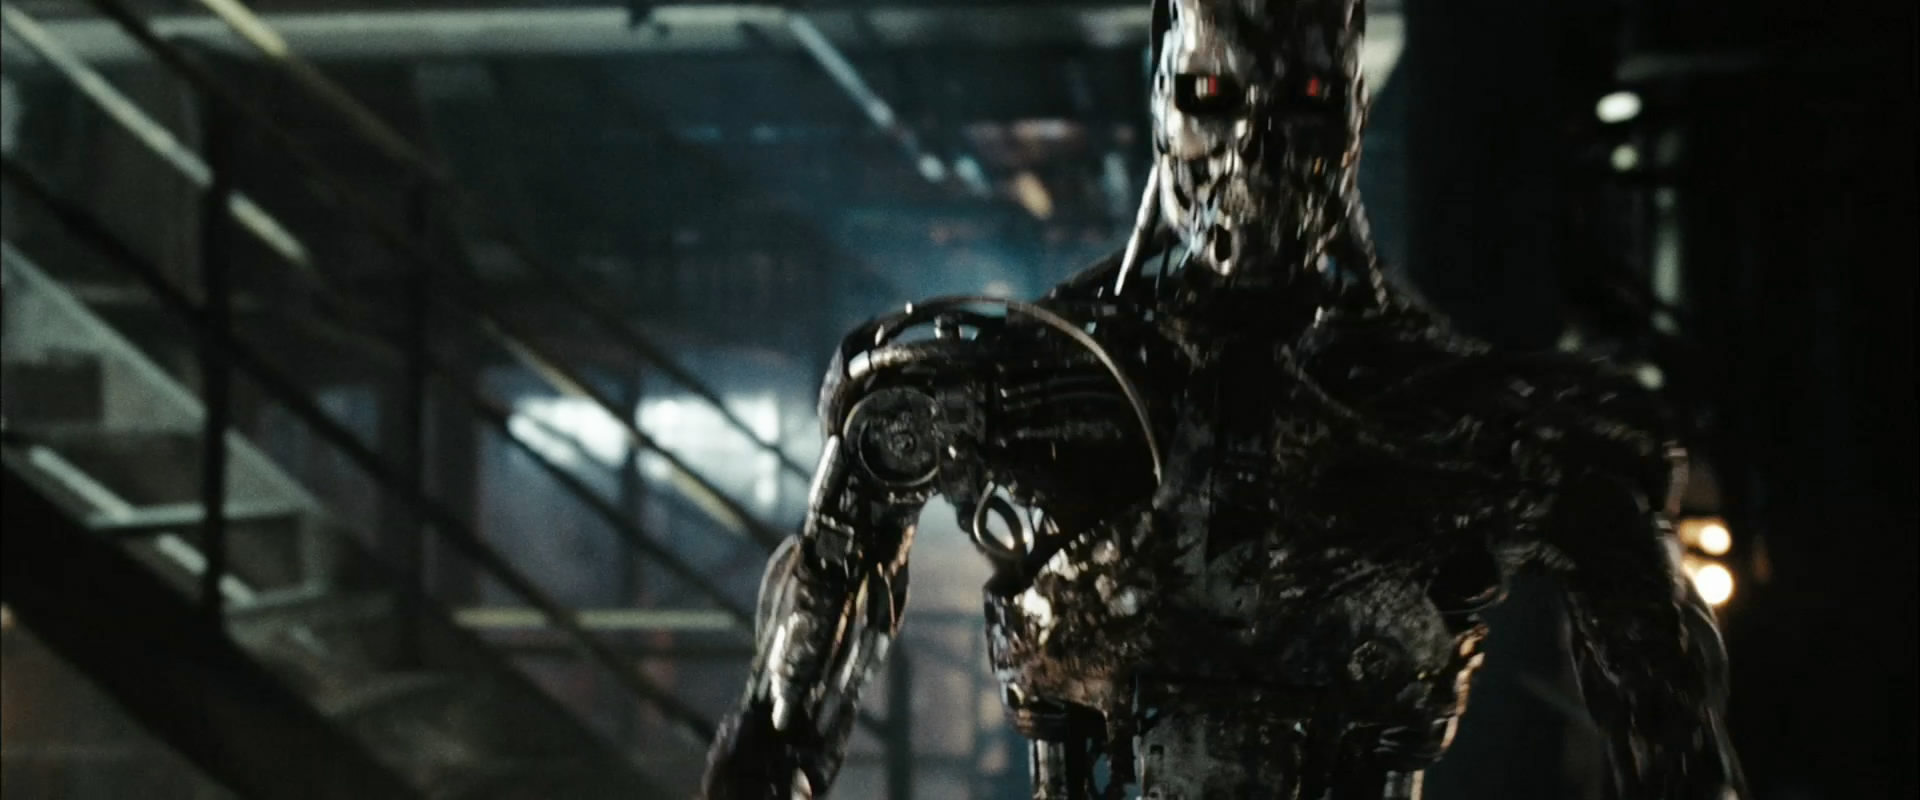 Terminator Salvation Domestic Trailer #3